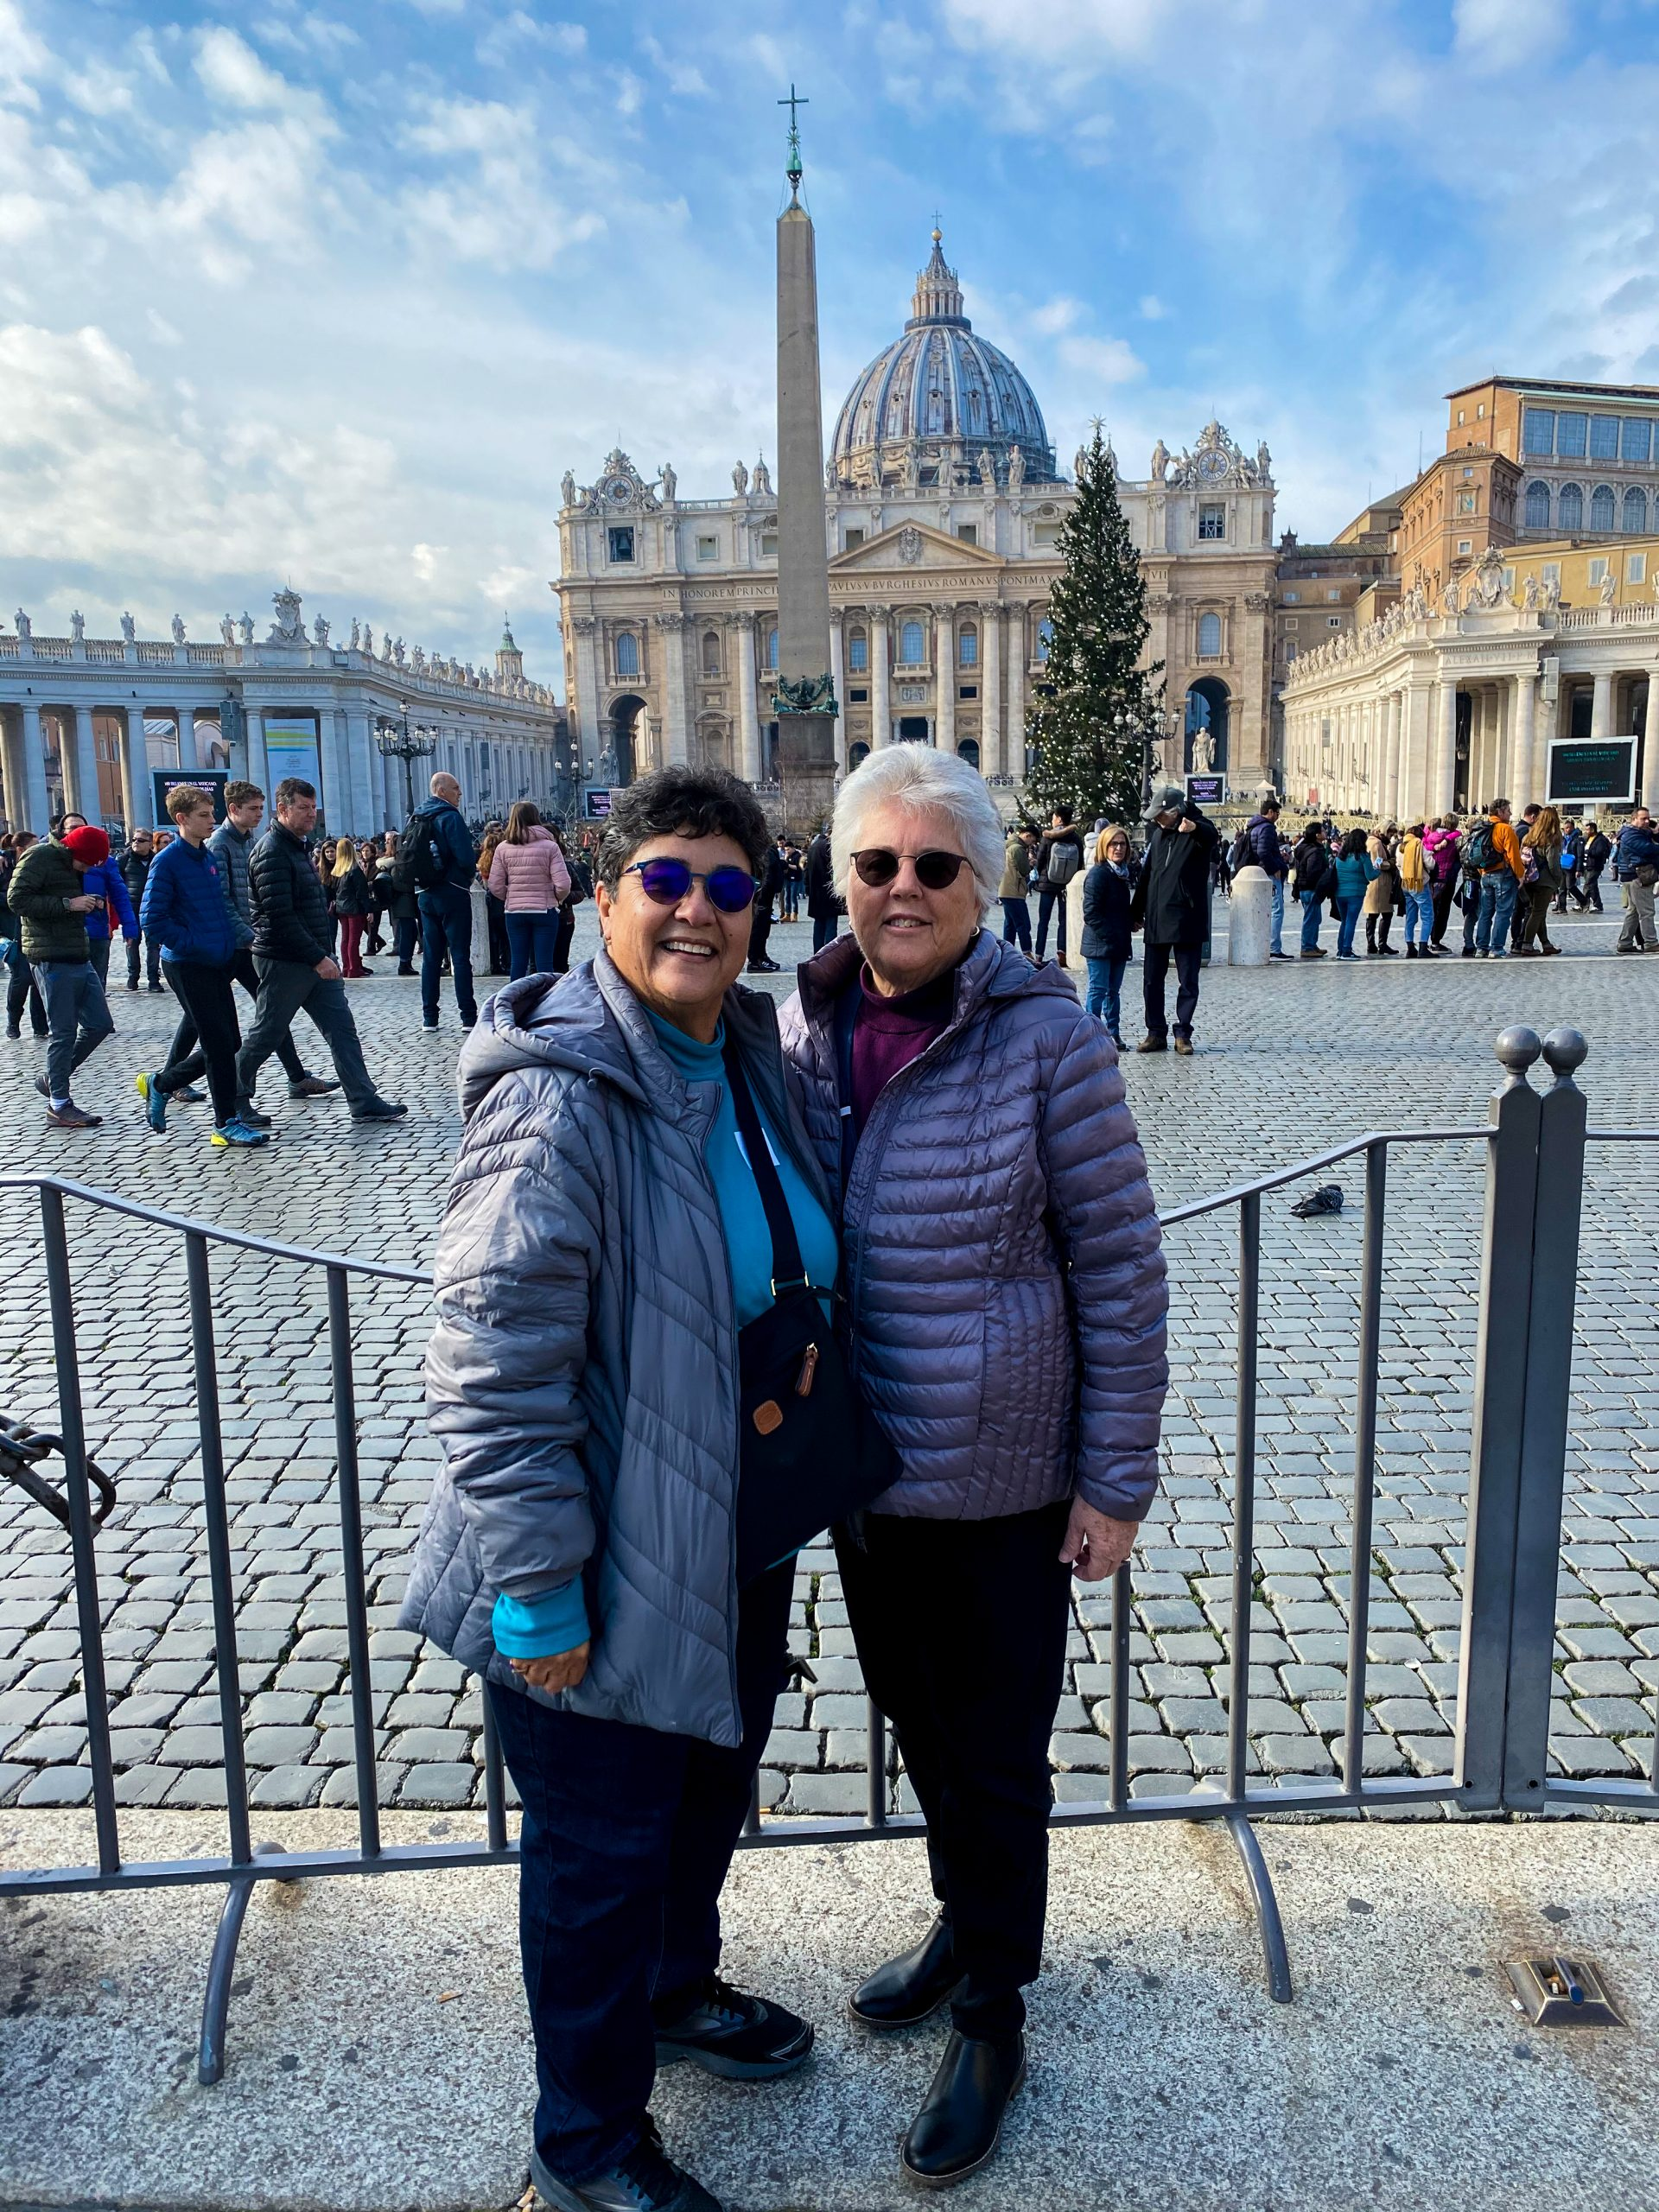 Two ladies standing in front of the Vatican in Rome